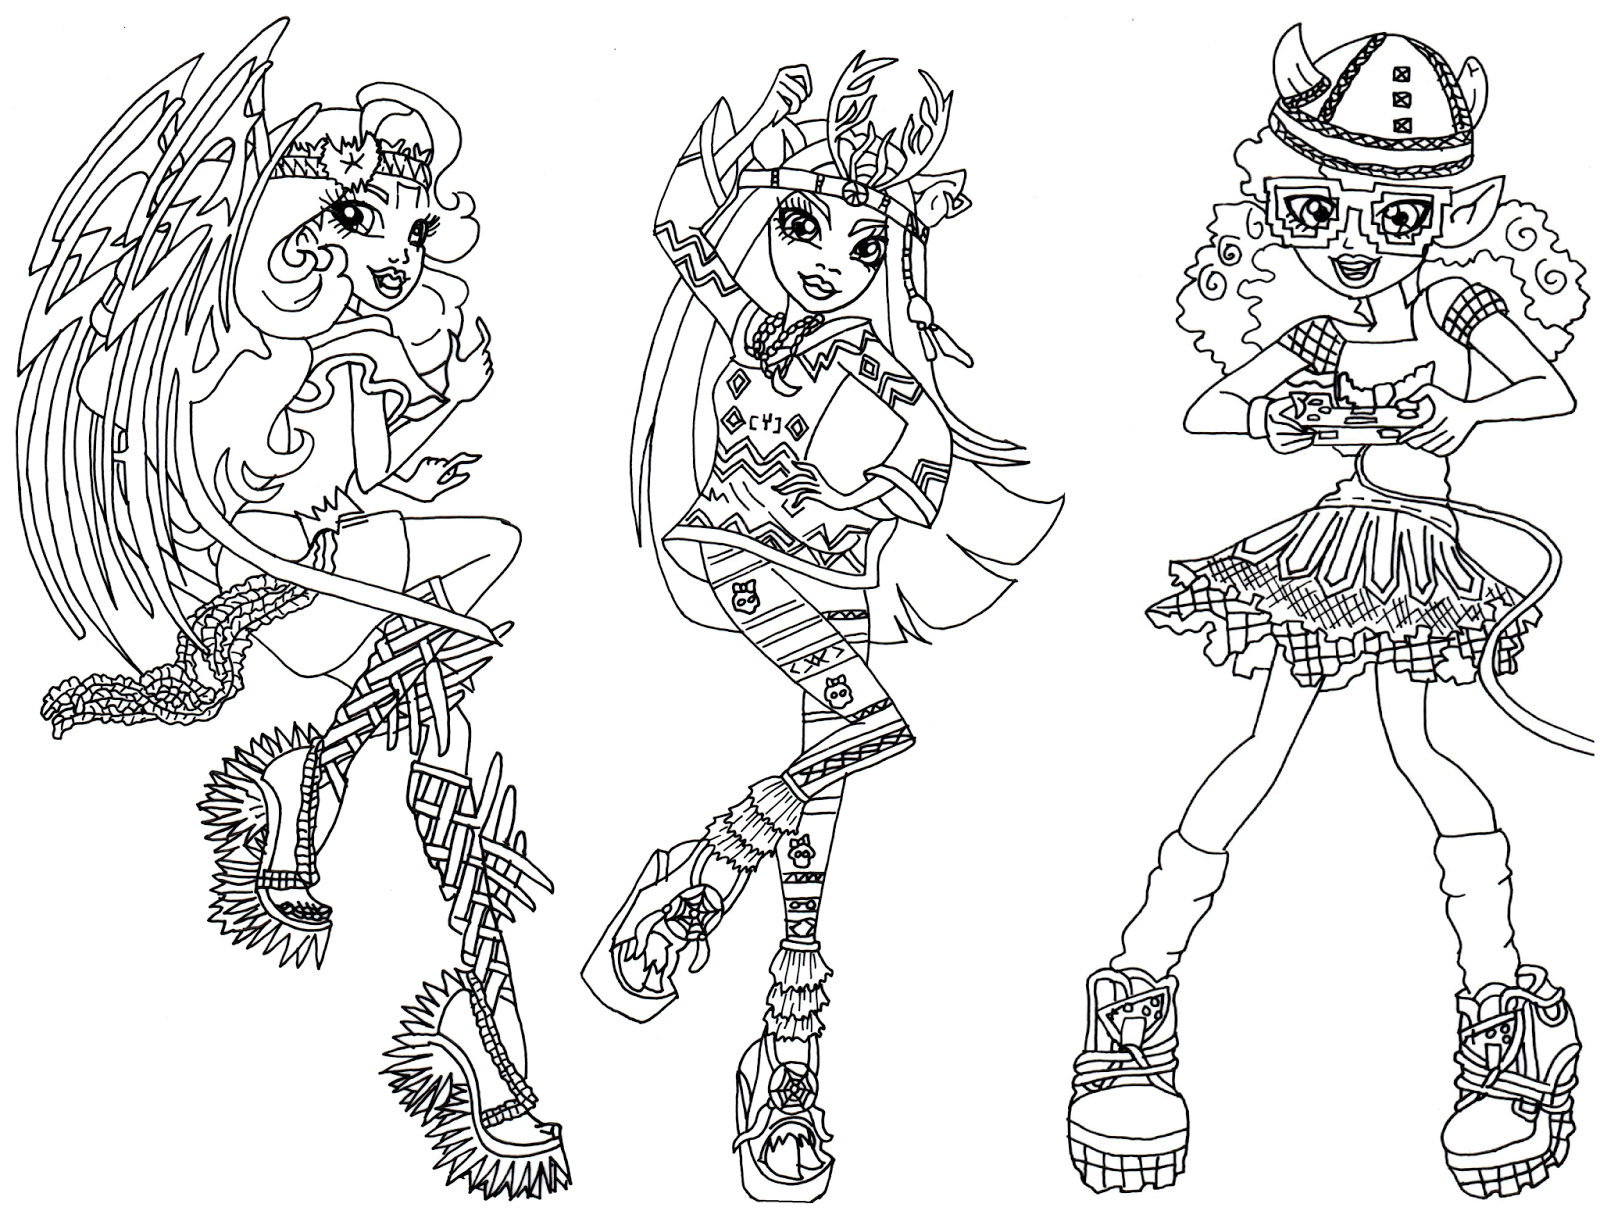 Boo York Brand Boo Students Monster High Coloring Page